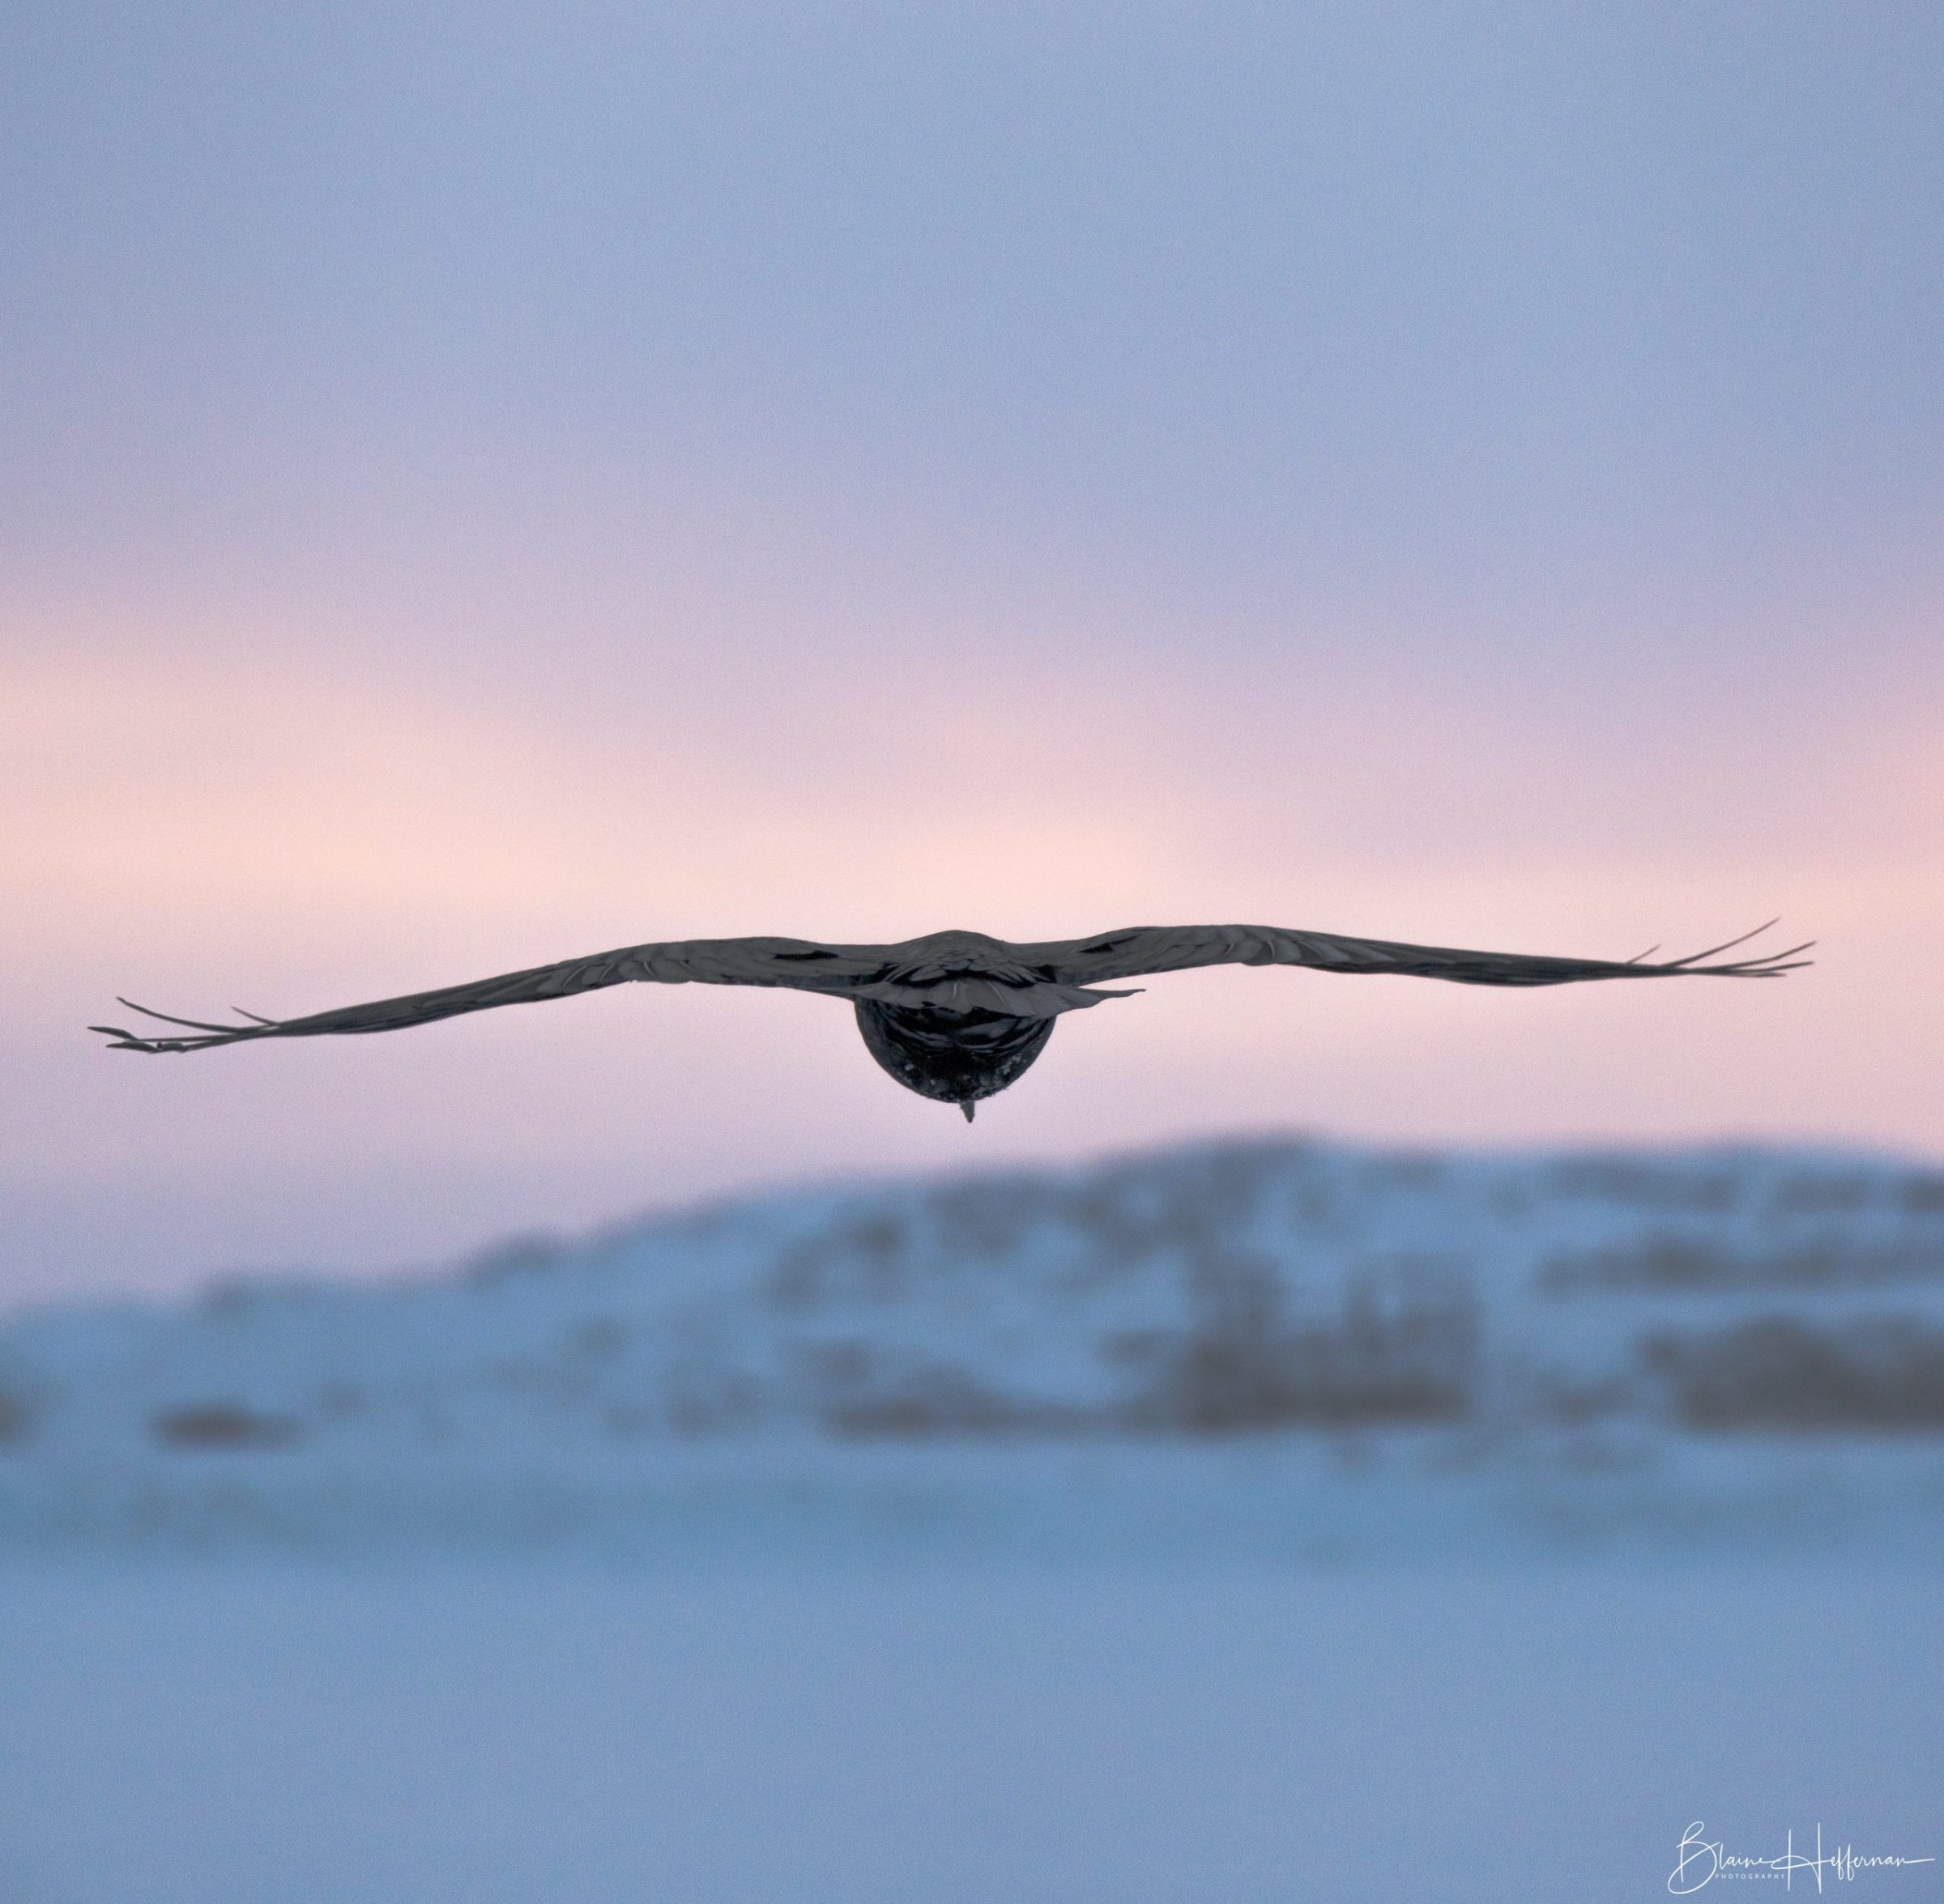 """Blaine Heffernan of Iqaluit photographed this raven in flight Jan. 3 around 3 p.m. """"I was taking some pictures of the sunset at the breakwater, when this raven landed near me. After a short rest, the raven decided it was time to fly off and this was when I was able to capture this image,"""" he writes. (Photo by Blaine Heffernan)"""